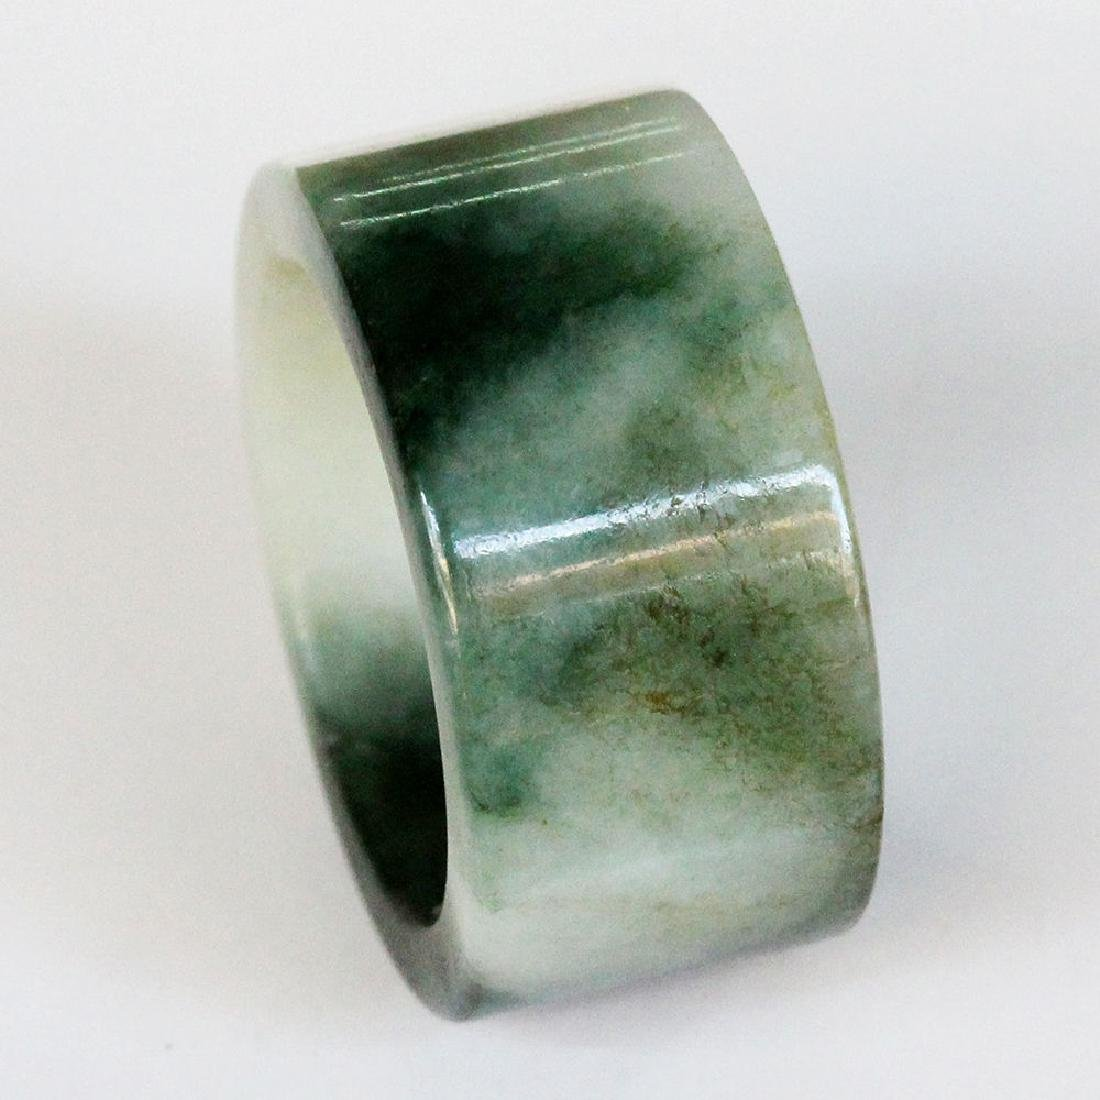 100% Natural Jadeite ( A Jade ) Ring Size - US 10